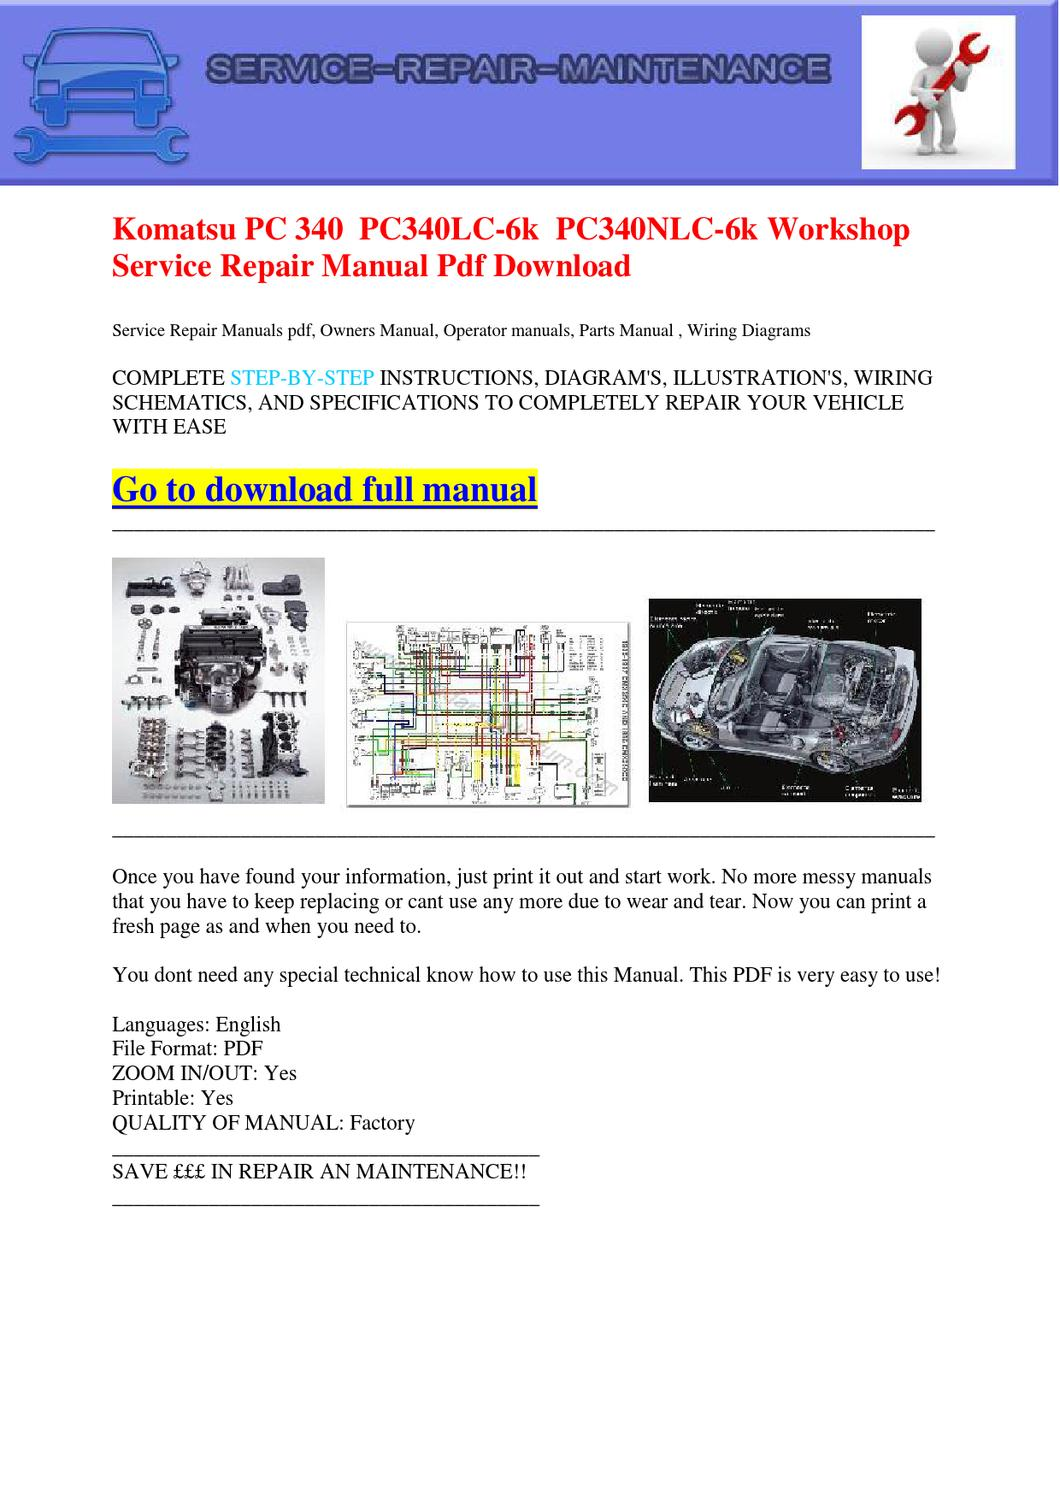 hight resolution of komatsu pc 340 pc340lc 6k pc340nlc 6k workshop service repair manual pdf download